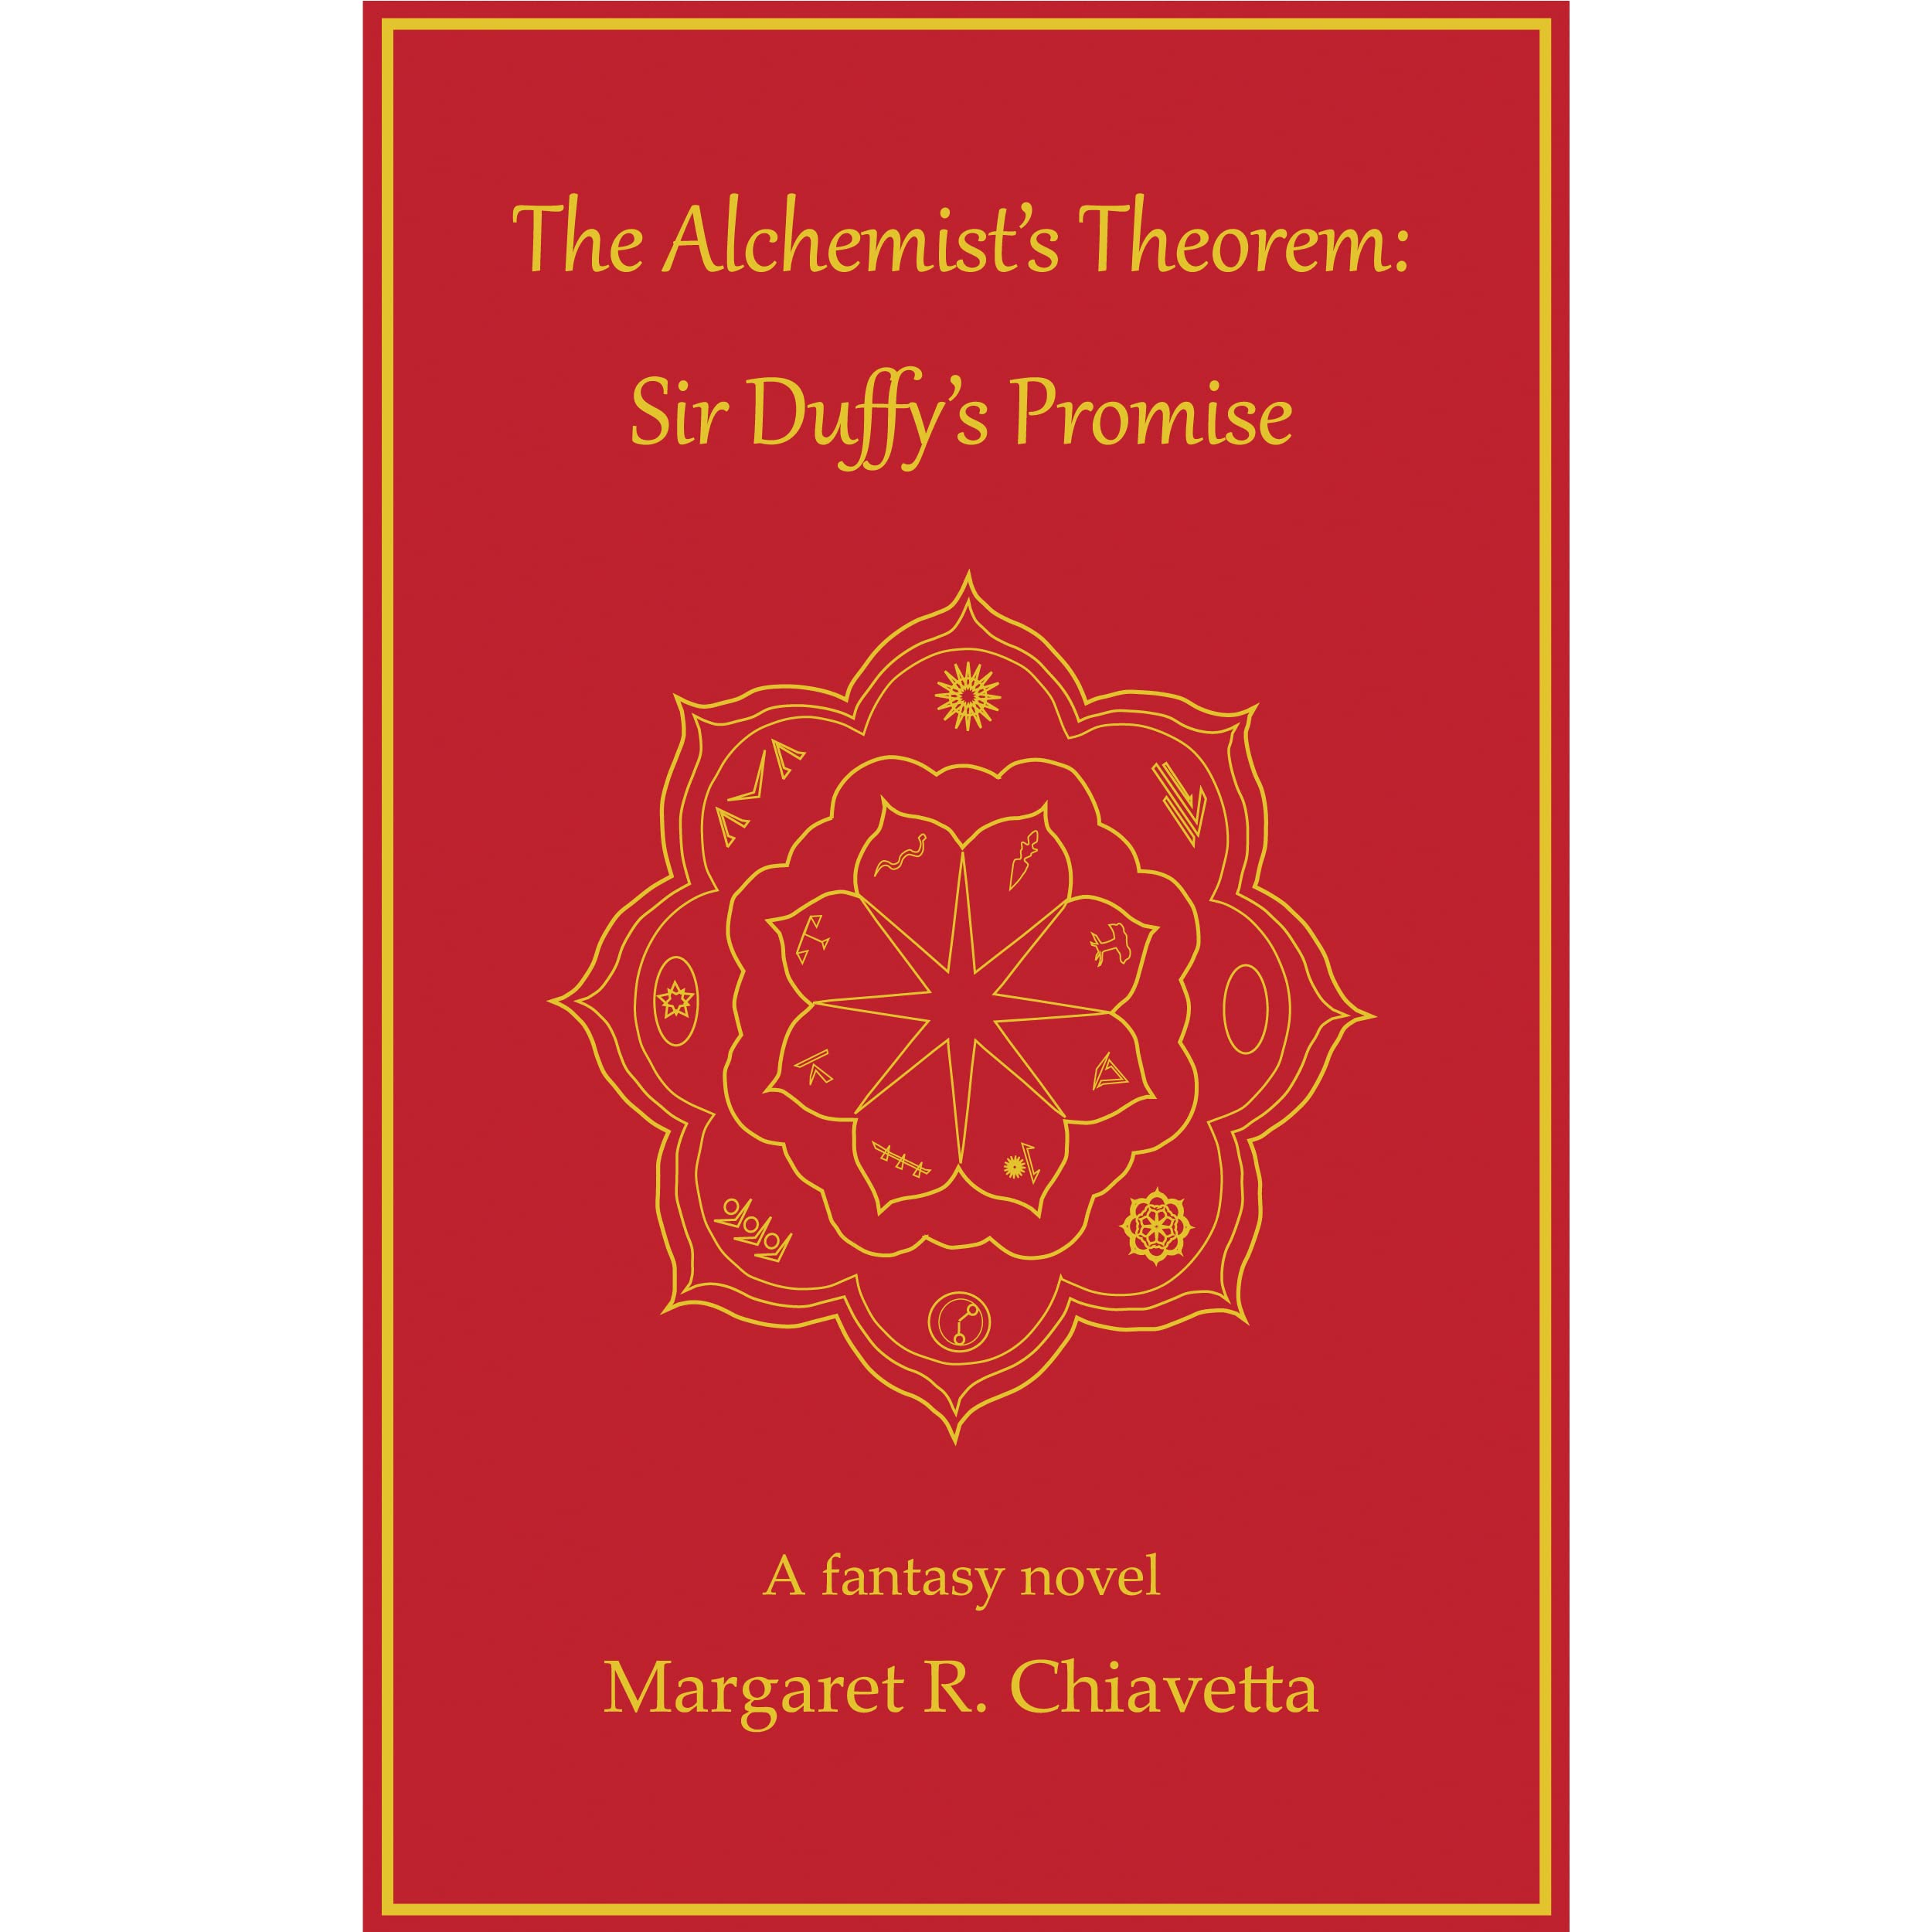 sir duffy s promise the alchemist s theorem book by margaret sir duffy s promise the alchemist s theorem book 1 by margaret r chiavetta reviews discussion bookclubs lists